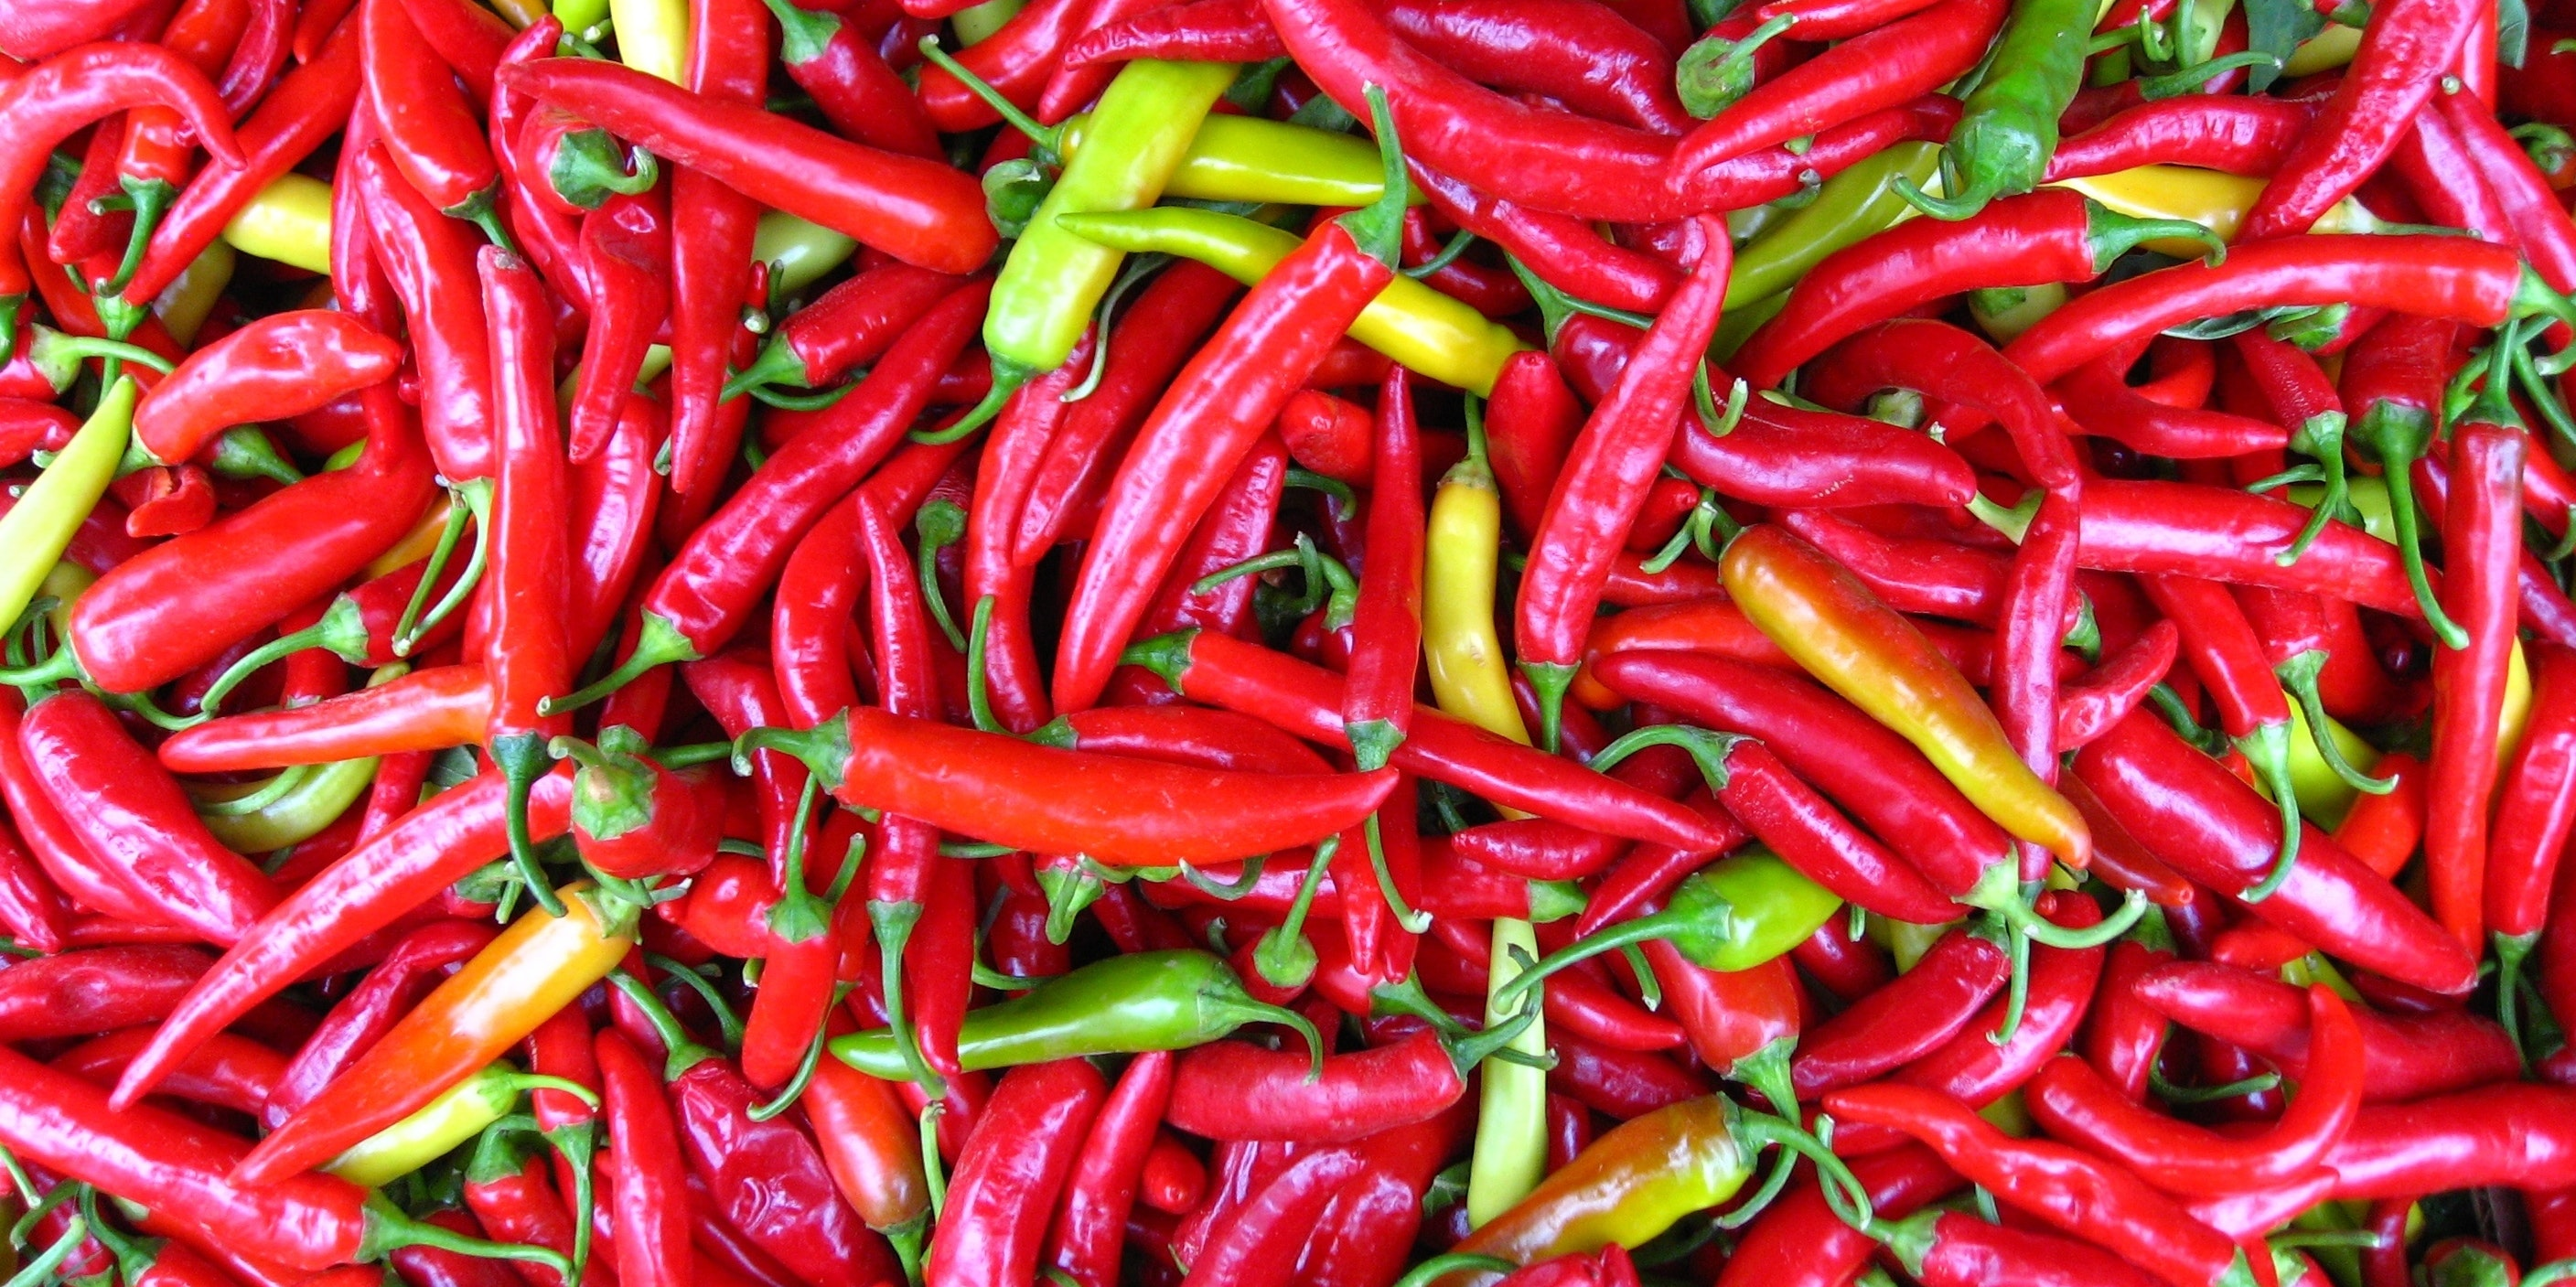 To Calm the Gut, Look to Weed and Hot Peppers